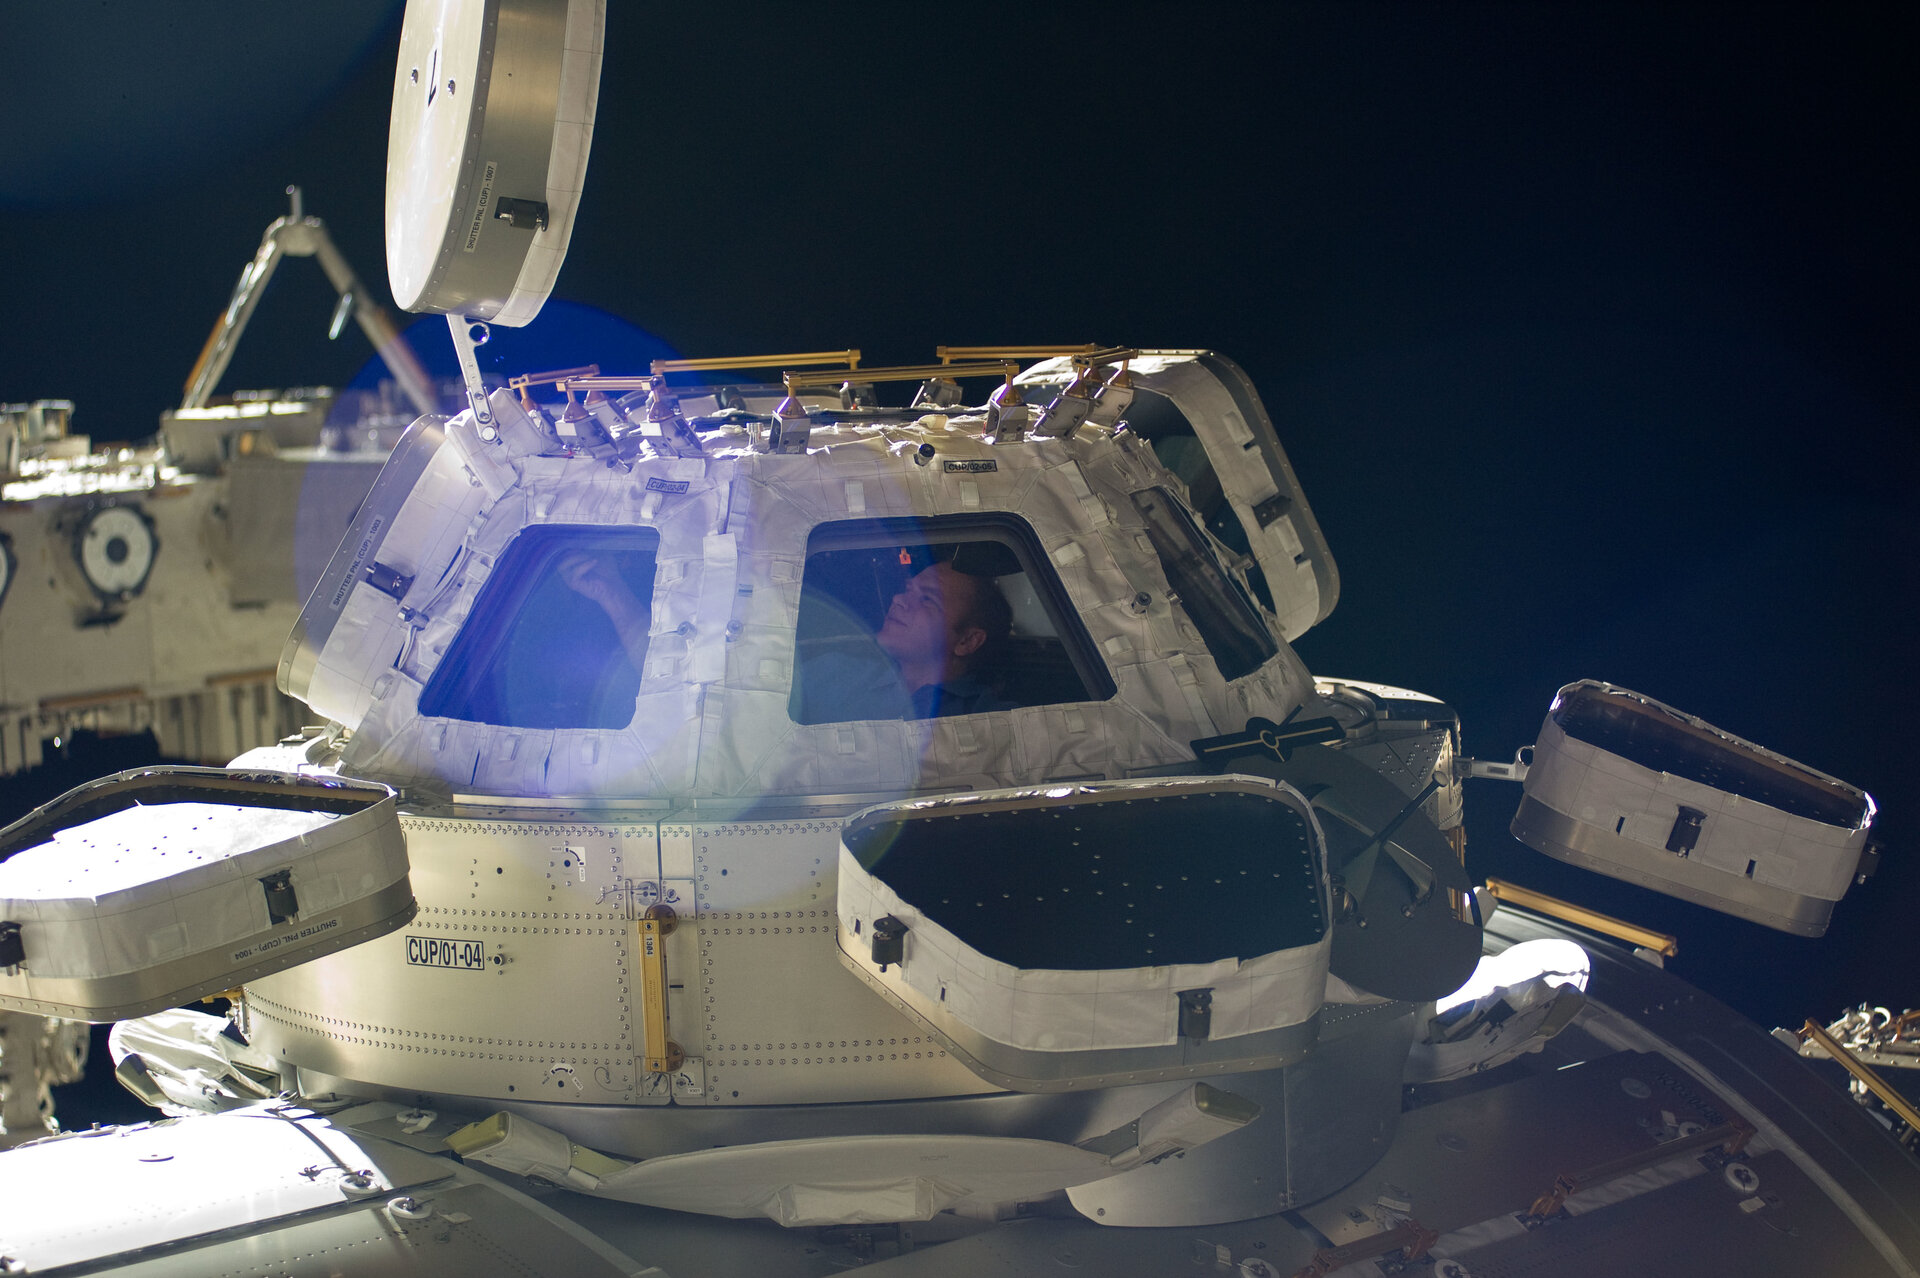 Oleg Kotov in a window of the Cupola